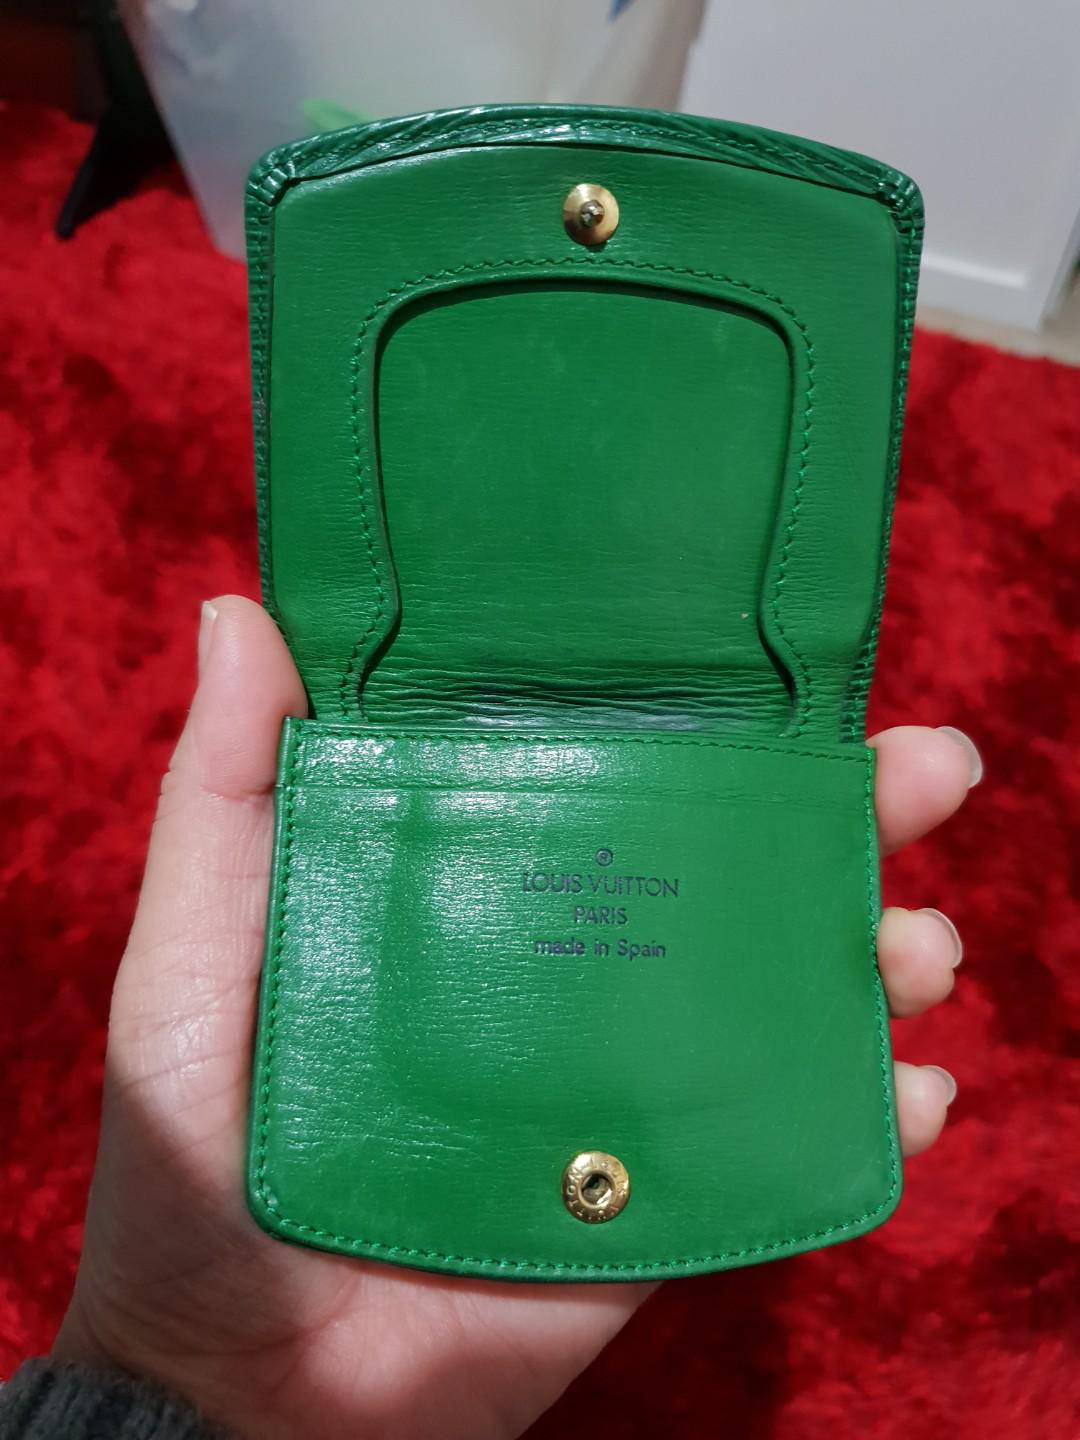 Authentic Epi Noe LV coin purse,can put some notes and 1 card.